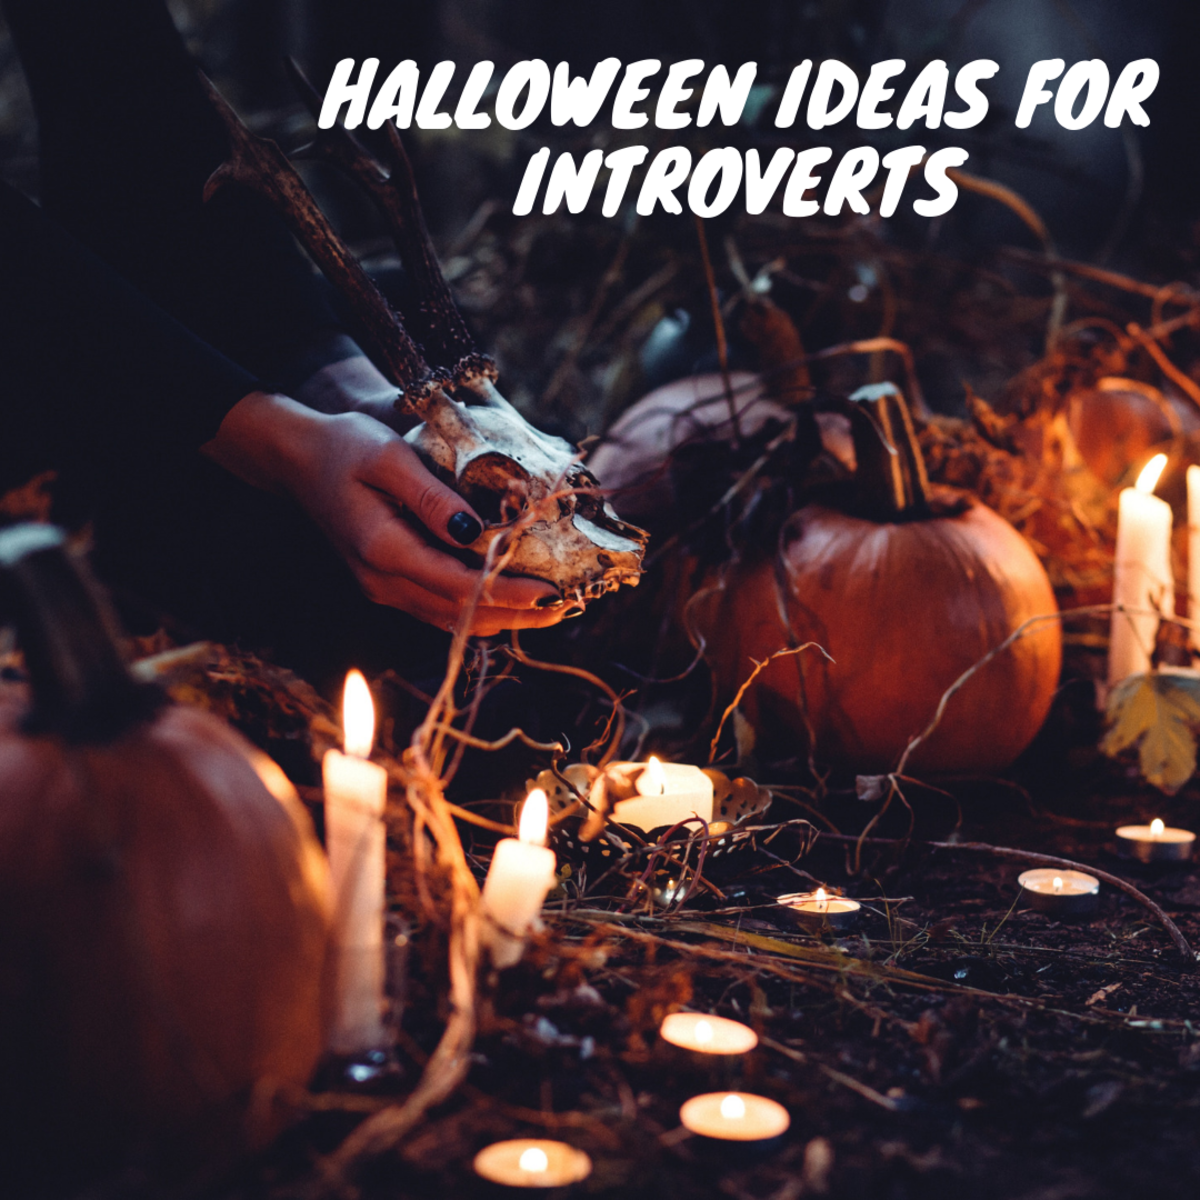 These ideas will make for a better Halloween!